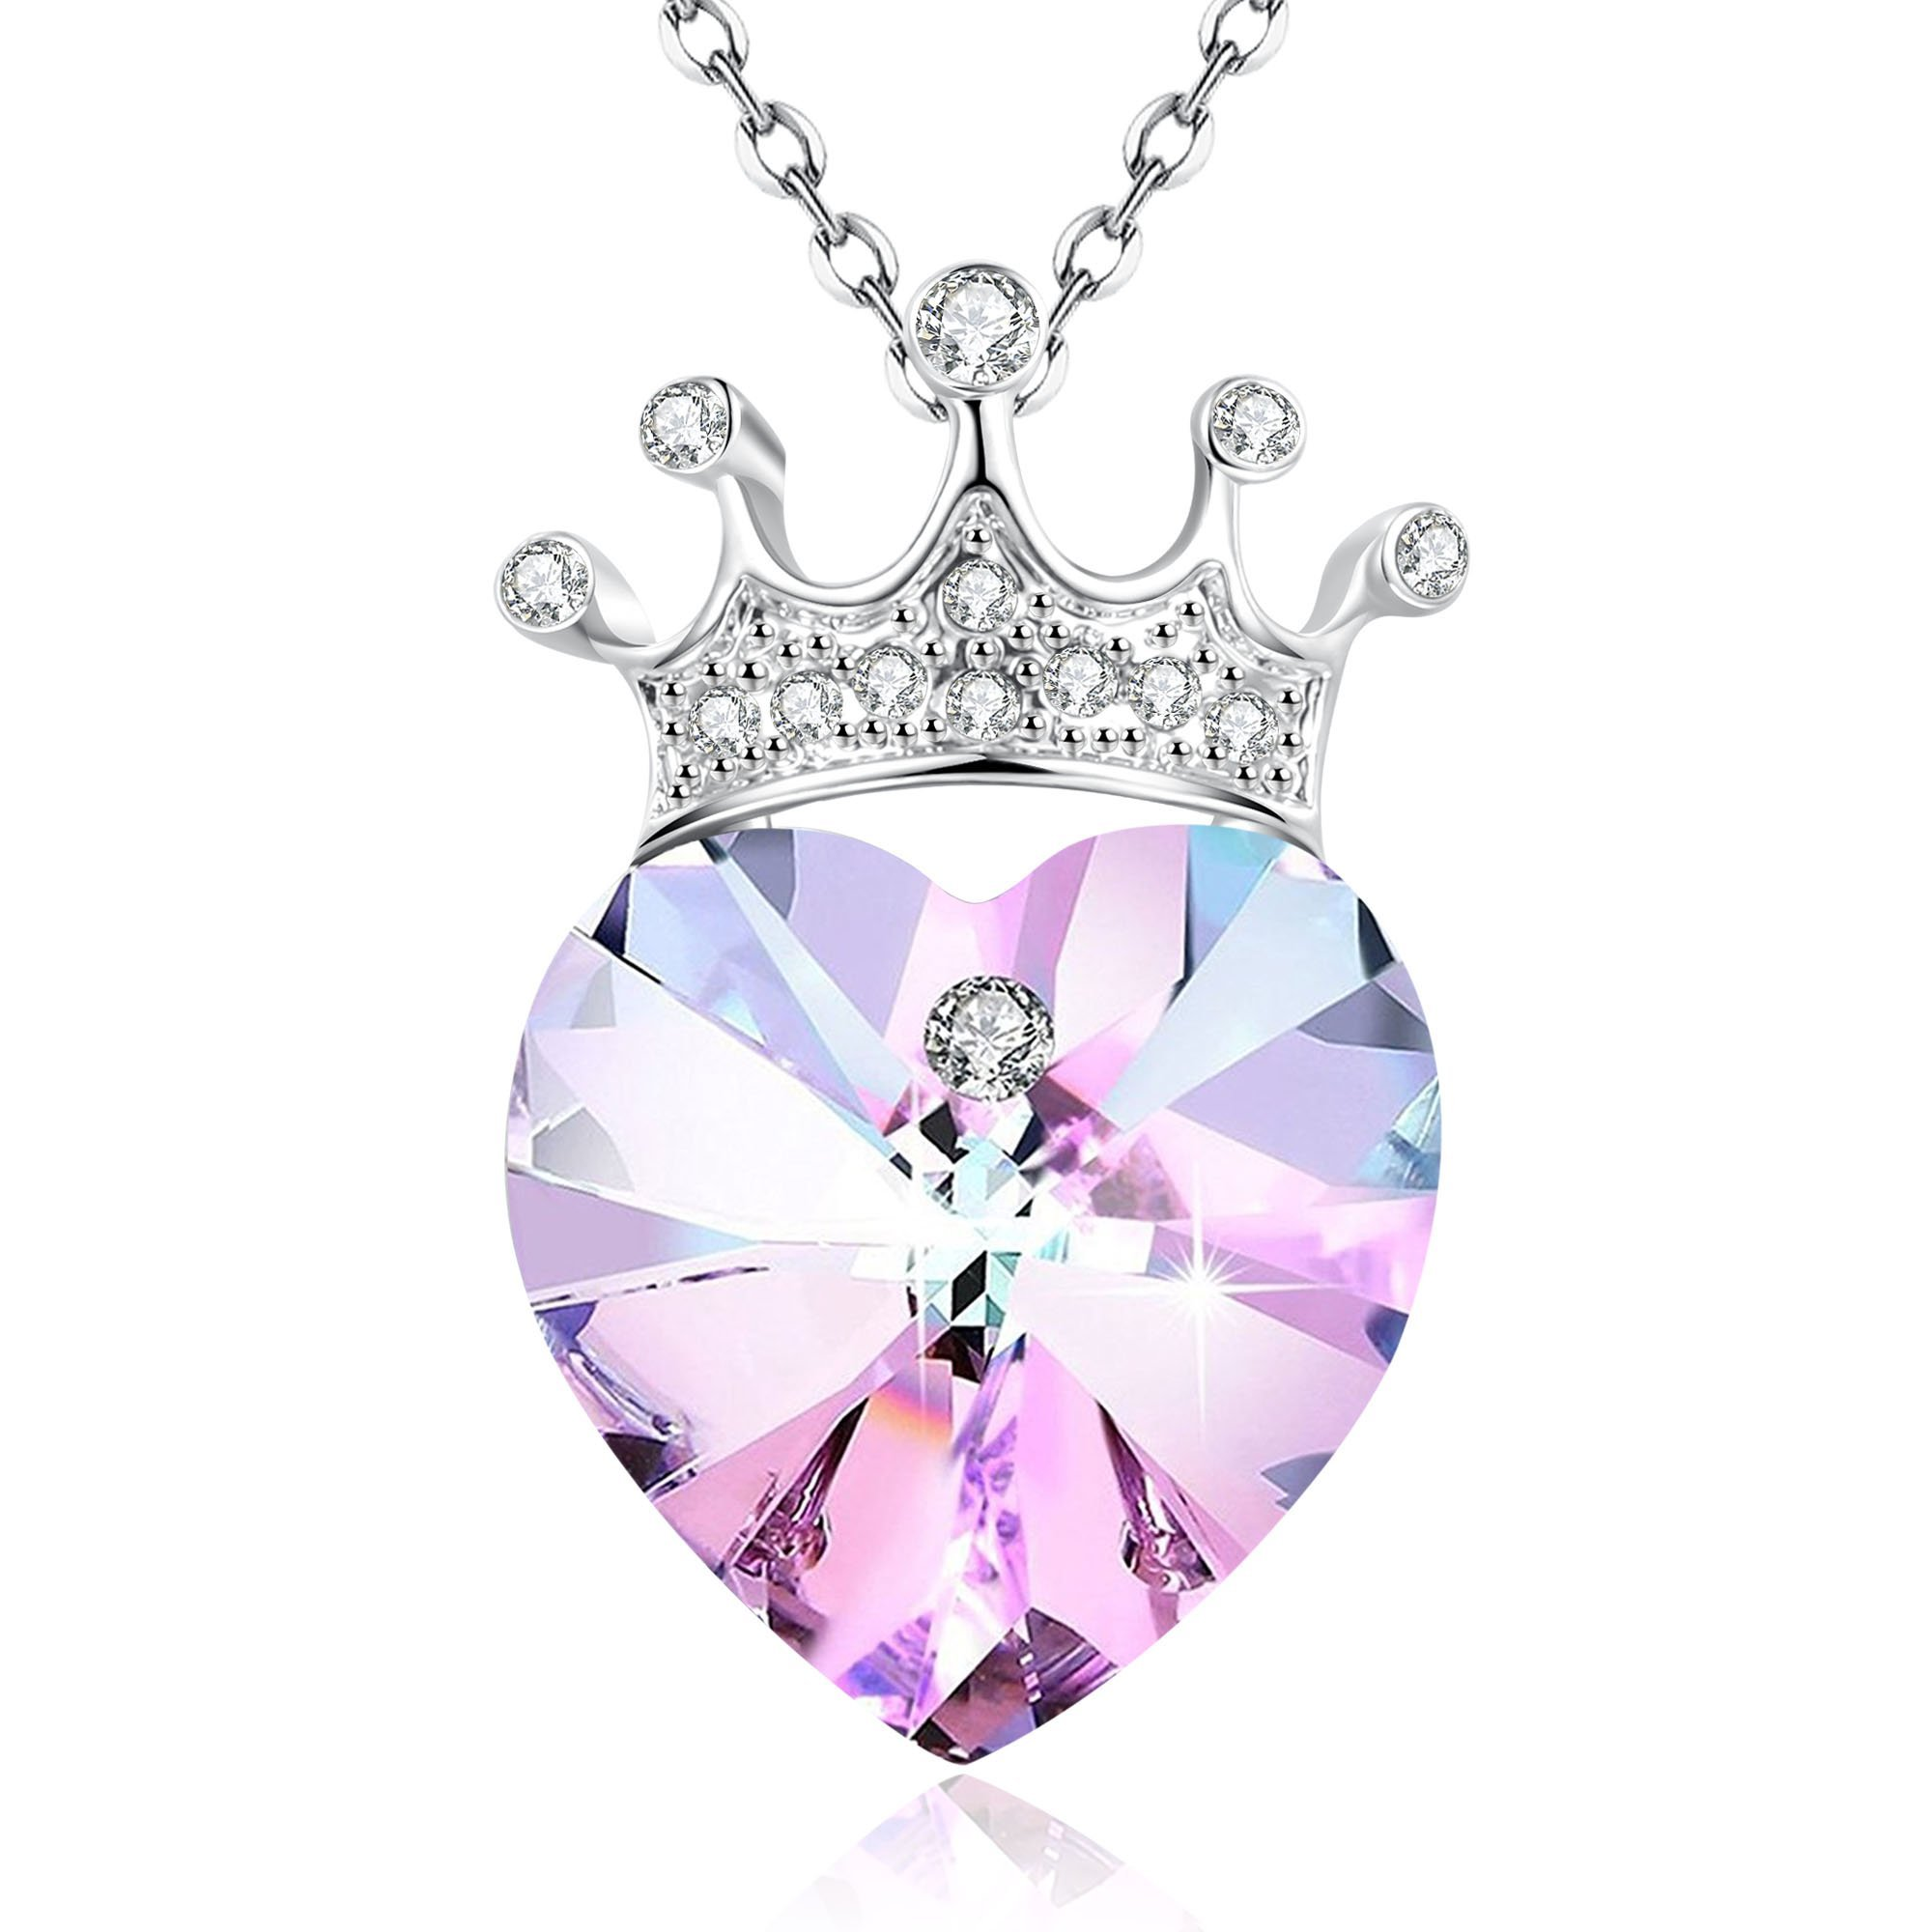 Angelady Gemstone Created Infinity Pendant Necklace Gifts for Women Girls Crystal from Swarovski Princess Crown Necklace Graduation Present